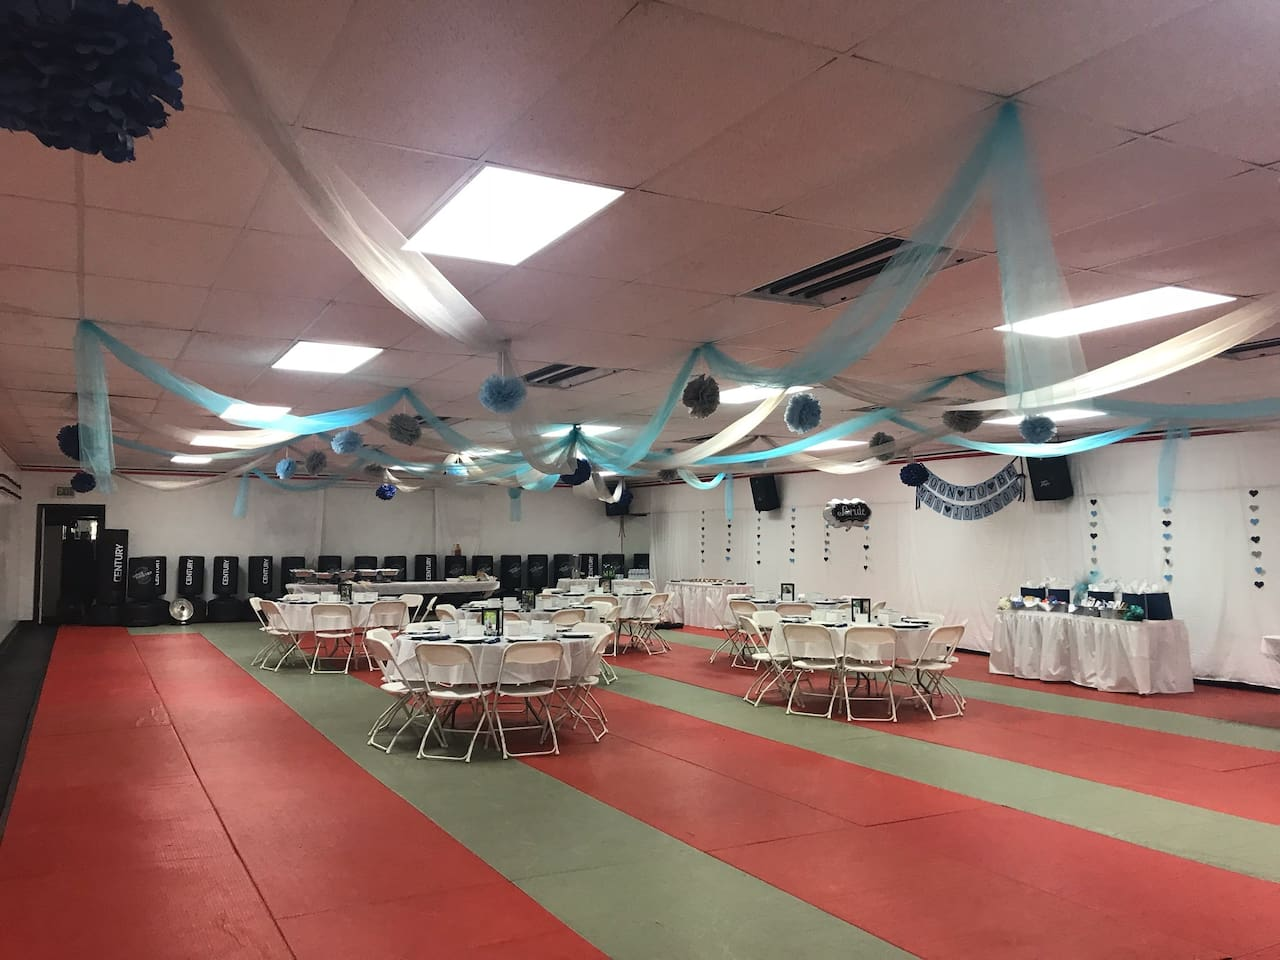 Baby shower to retirement party and everything in between.  Space for most any event.  How would you decorate?